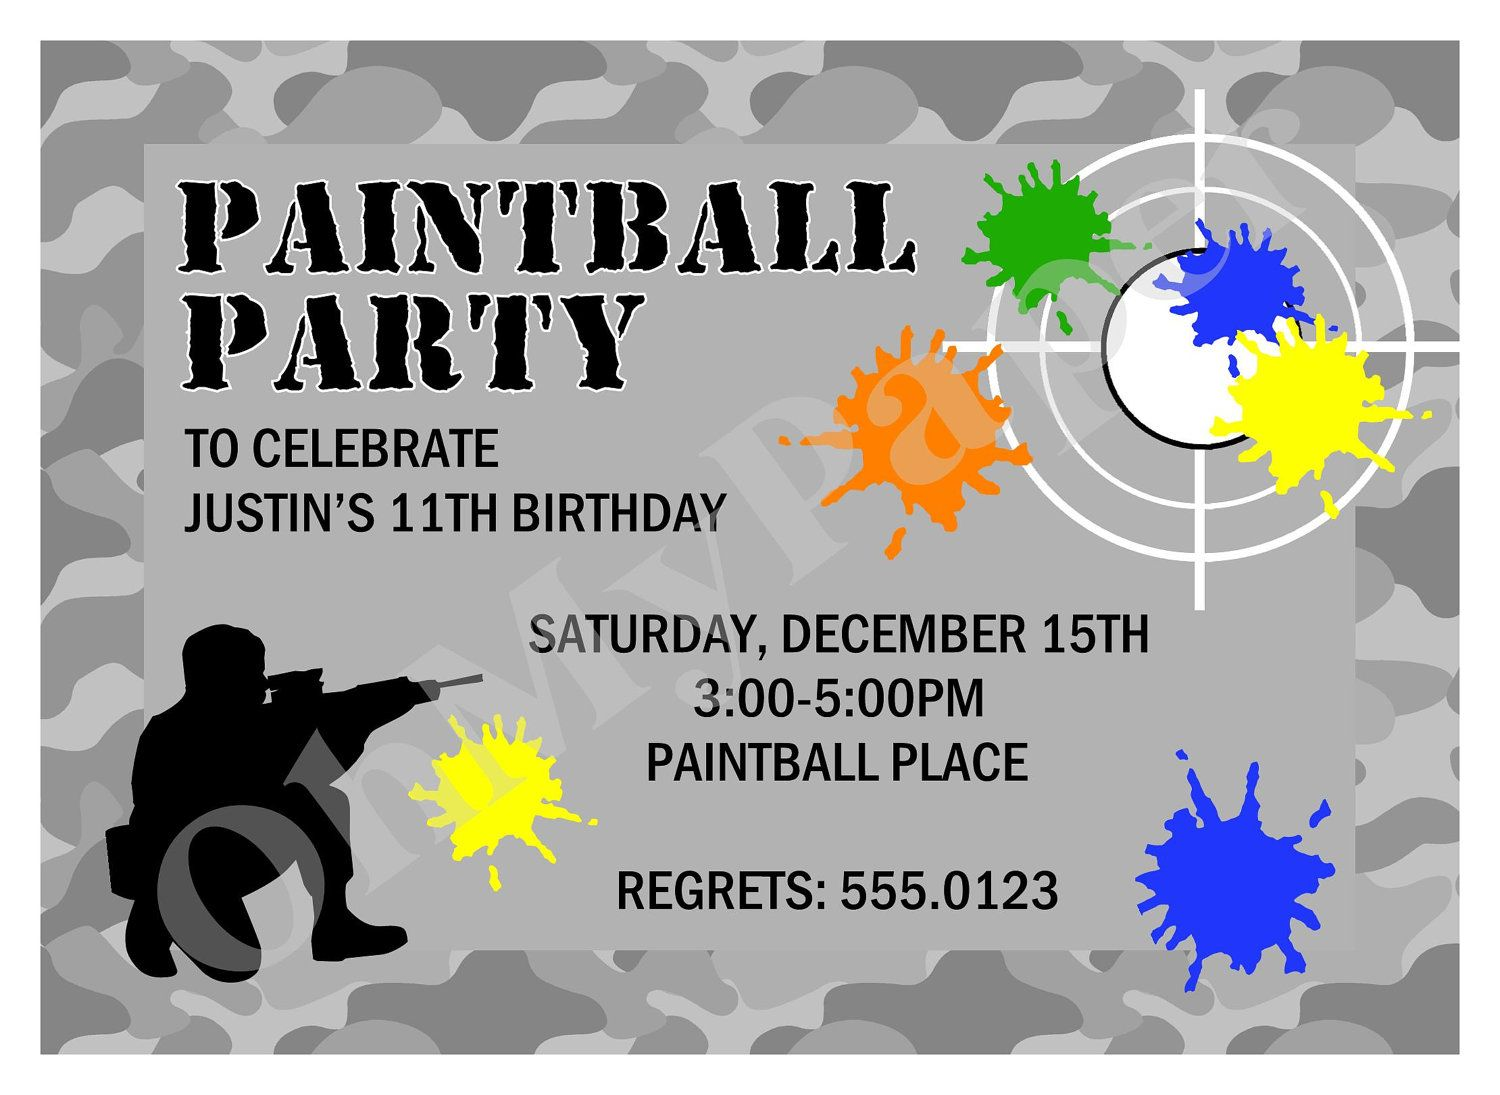 Free Paintball Party Invitation Template Birthday ideas